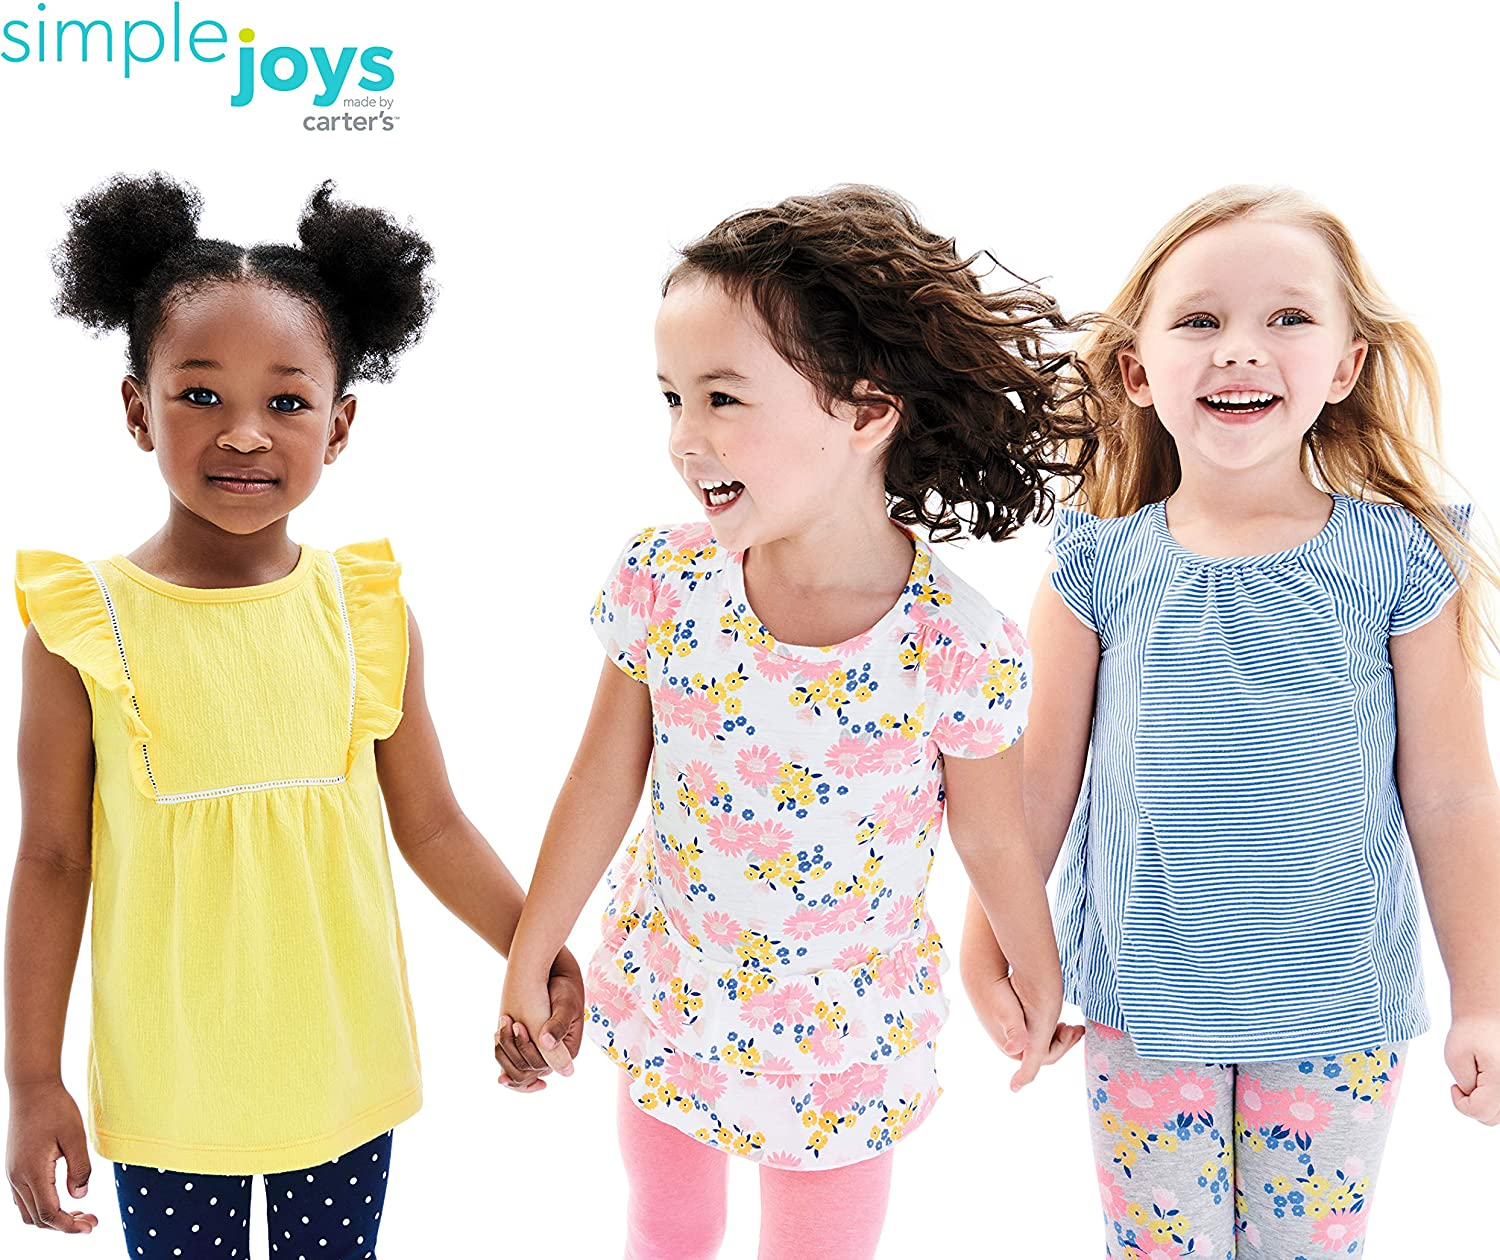 Simple Joys by Carters Toddler Girls 3-Pack Short-Sleeve Shirts and Tops